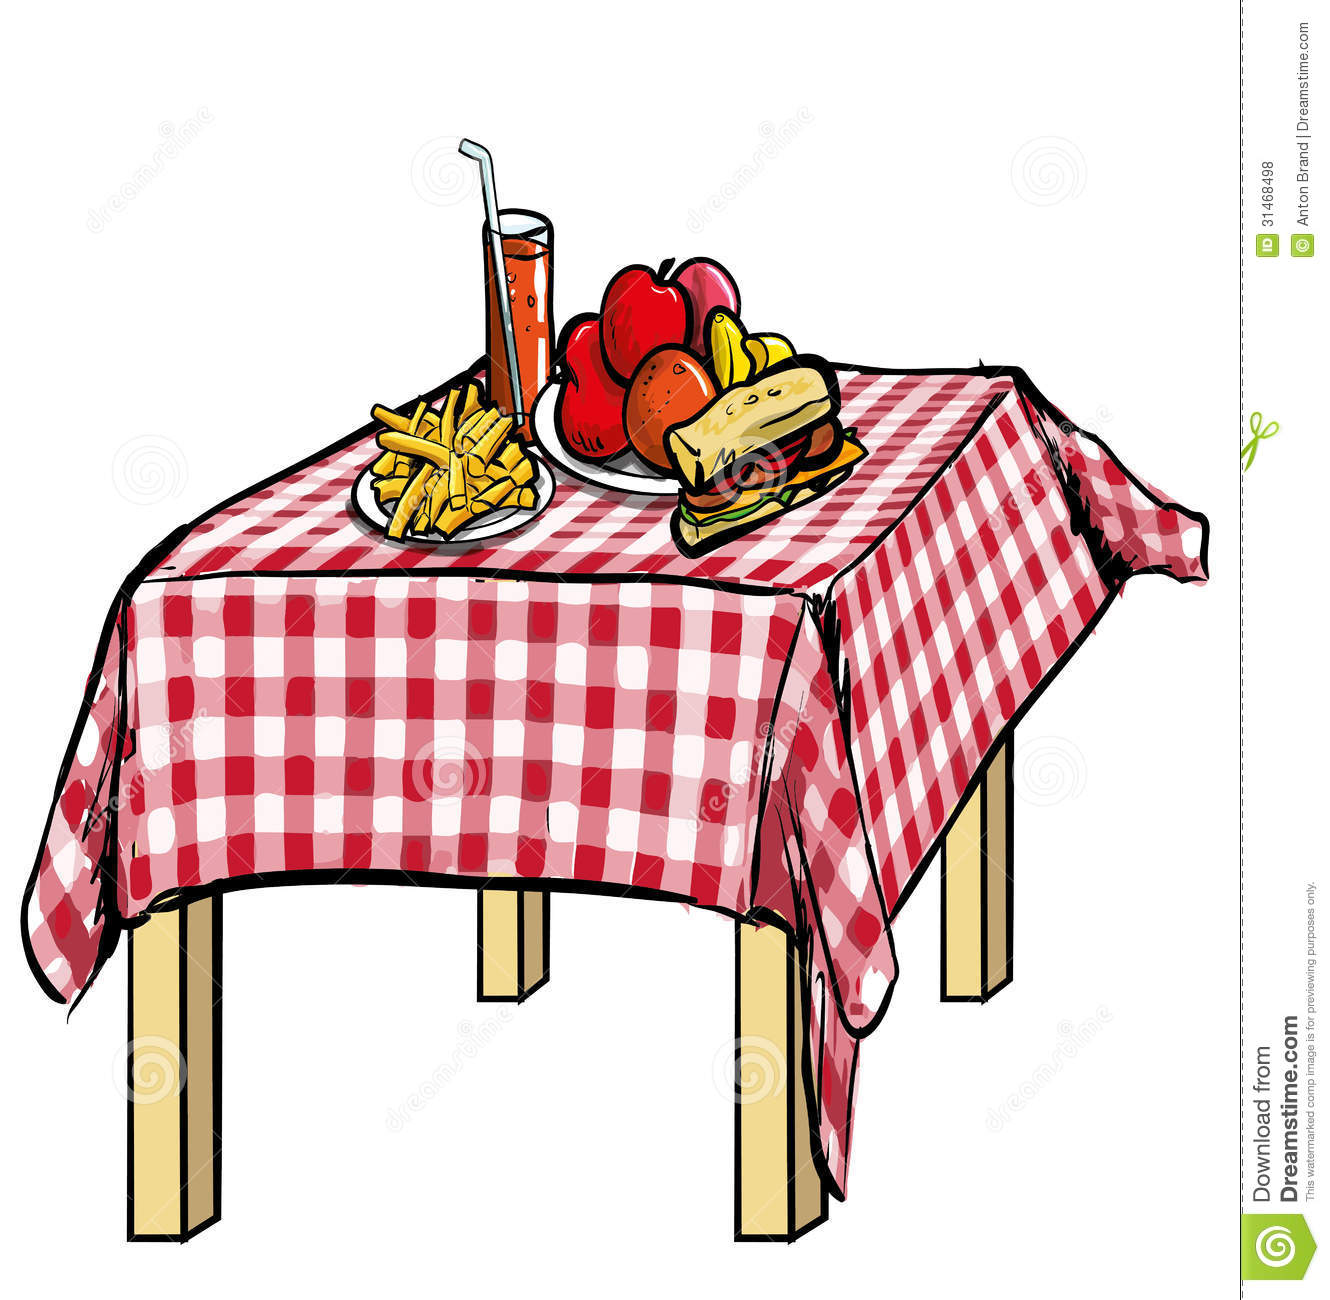 Illustration Of A Picnic Table With Food On It Royalty Free Stock ...